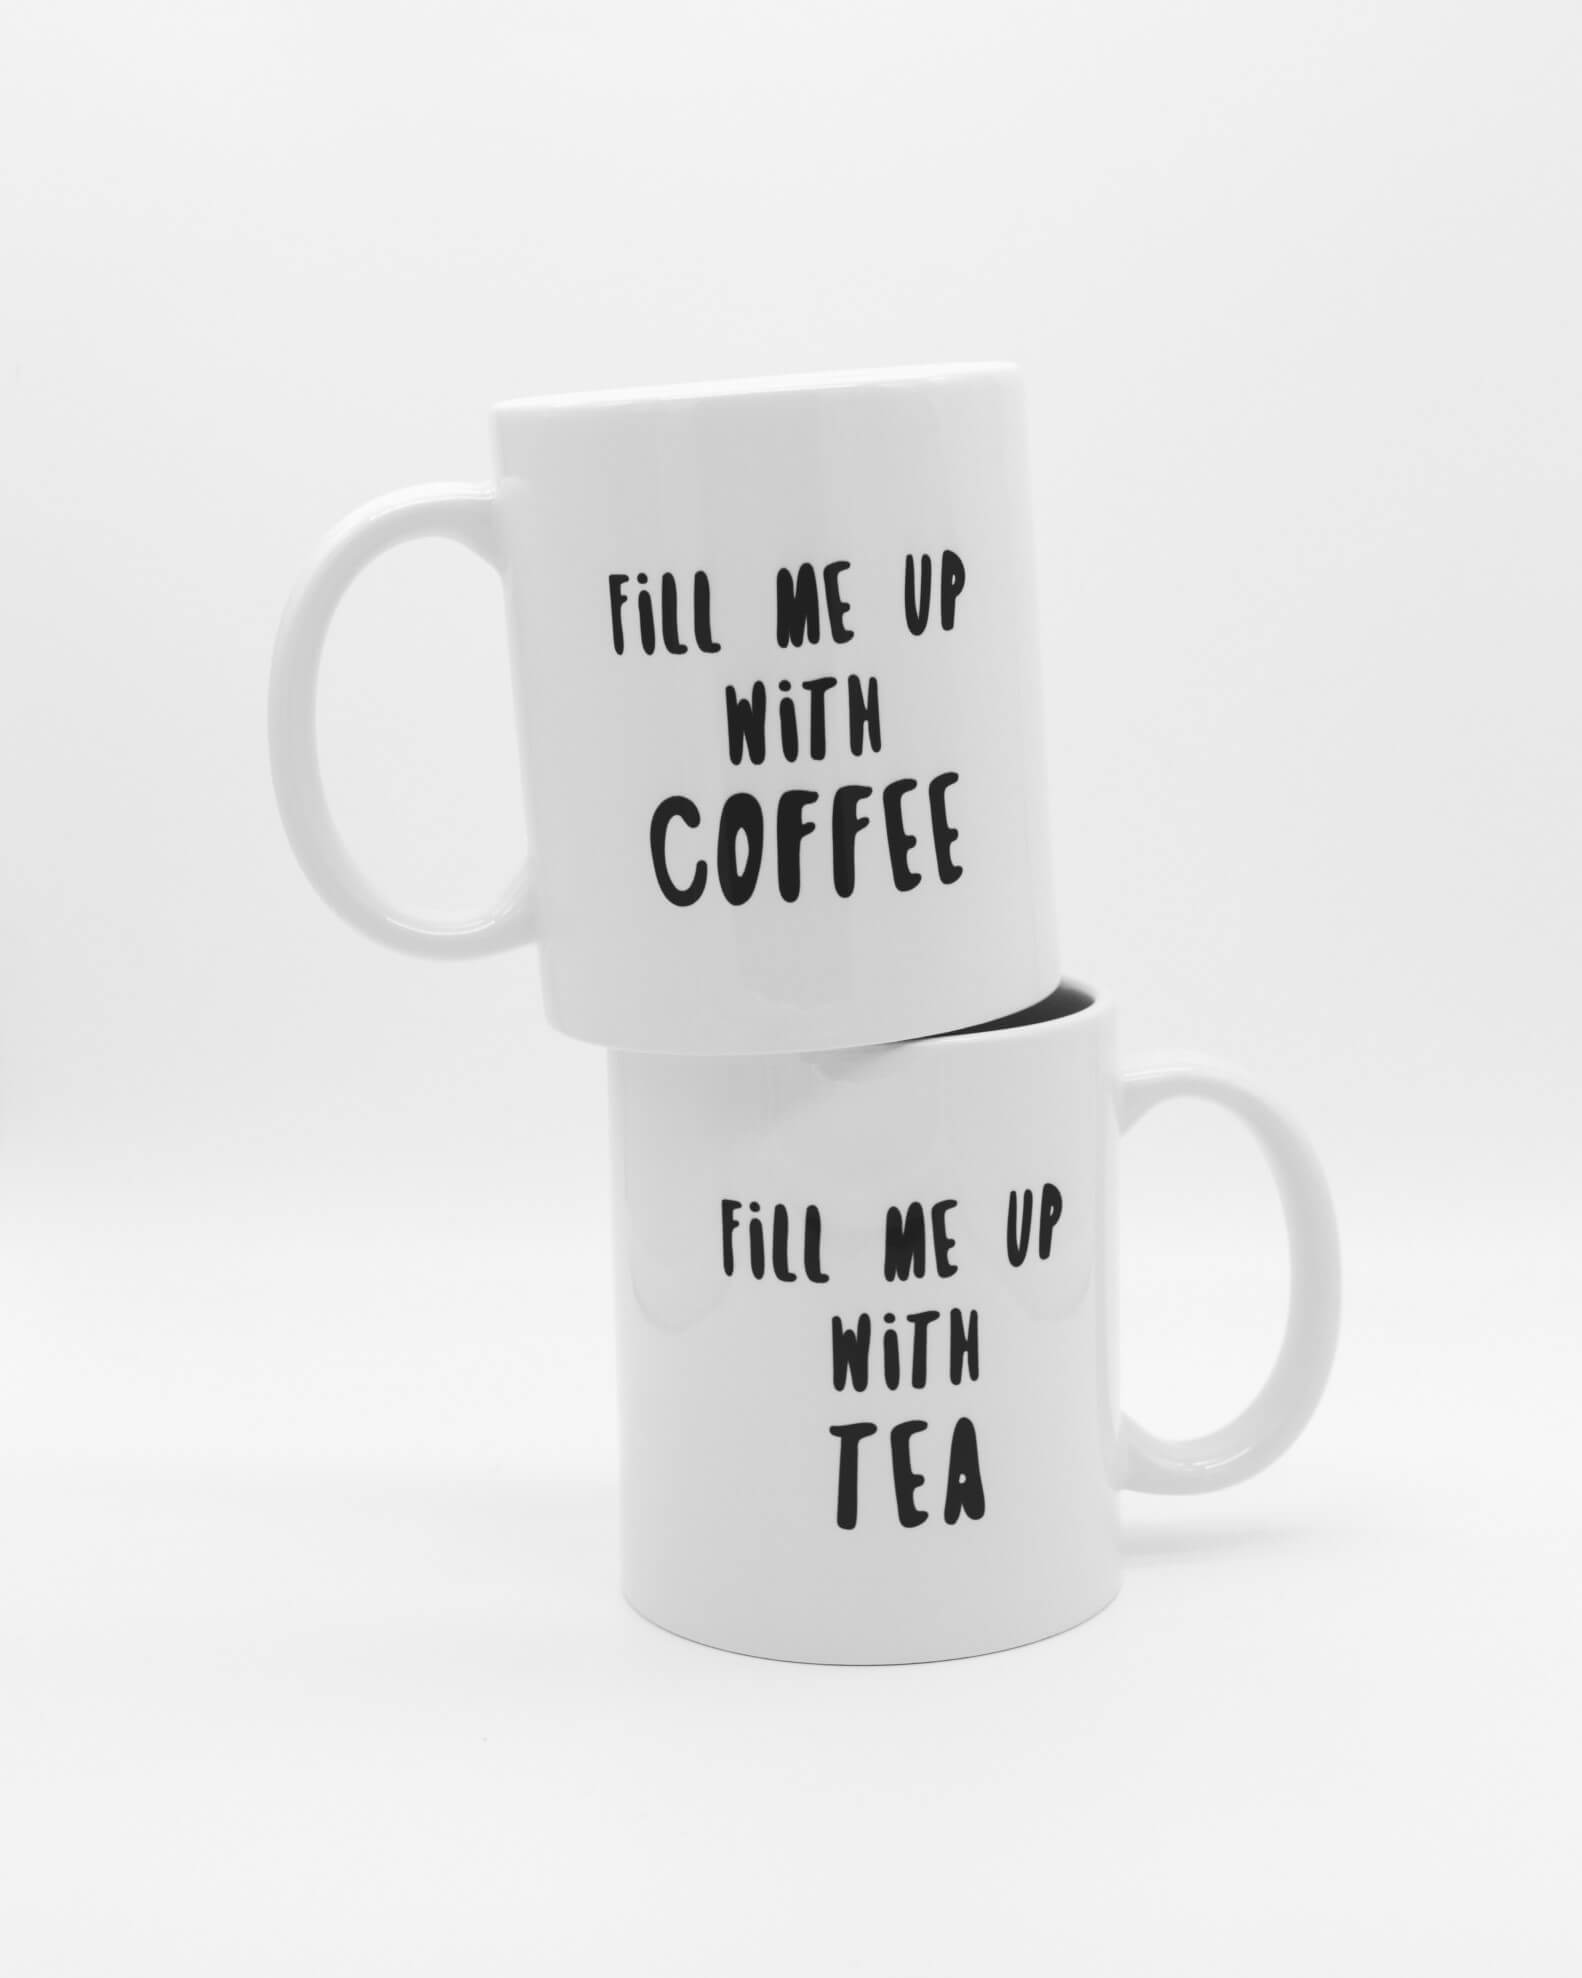 Lifestyle Coffee, Travel and Gift Tea Mugs